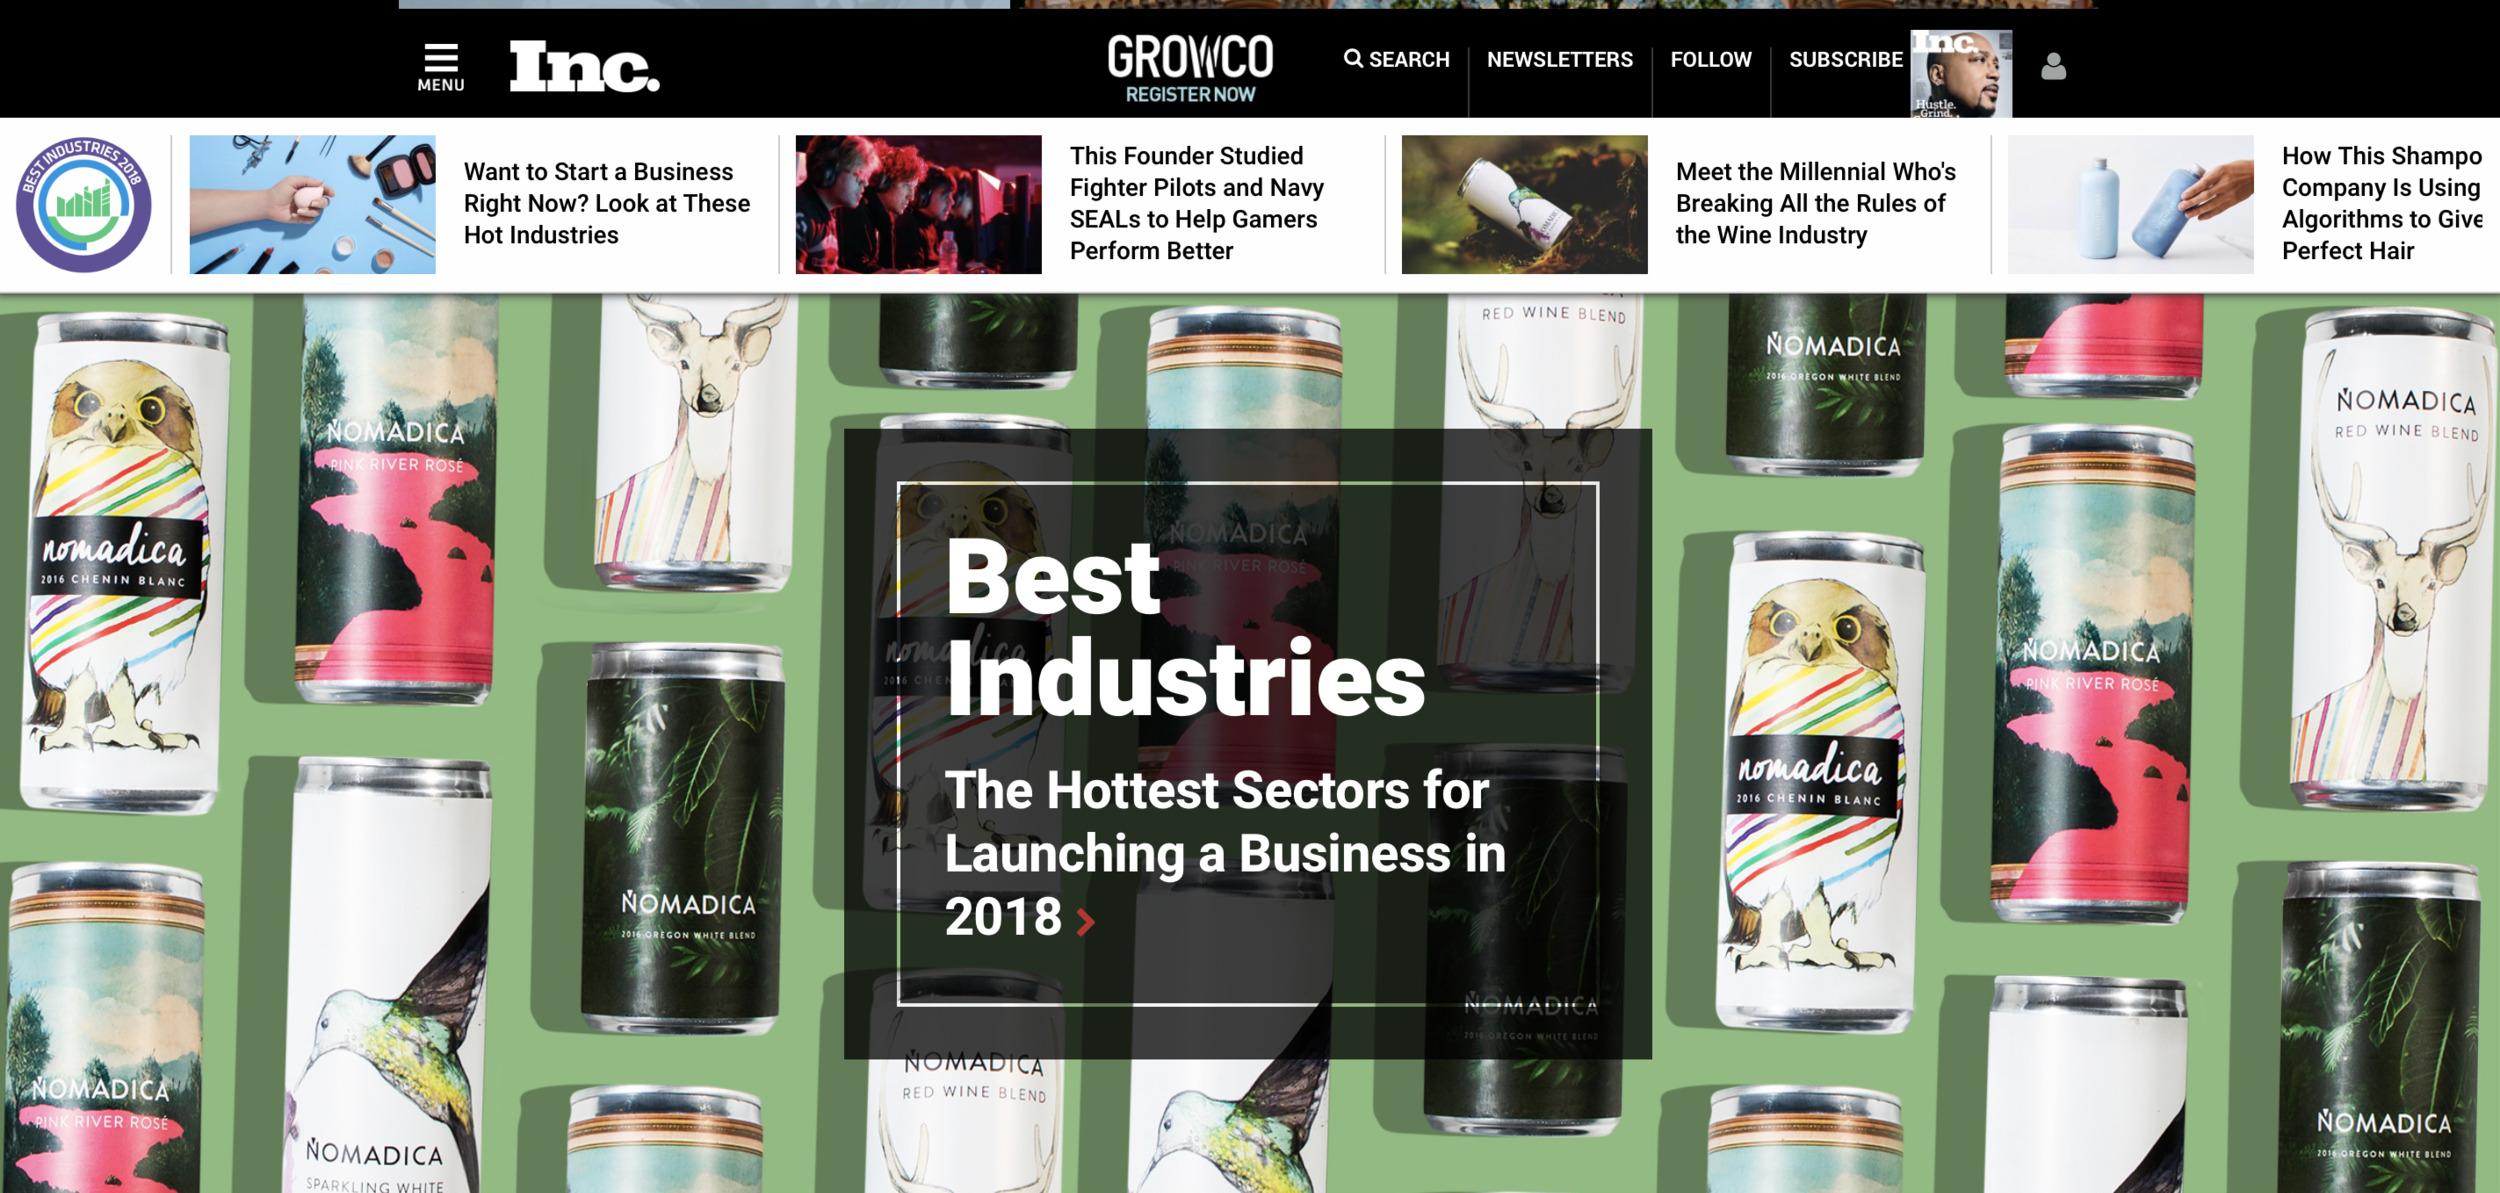 Homepage featuring Inc's Best Industries 2018 (www.inc.com)